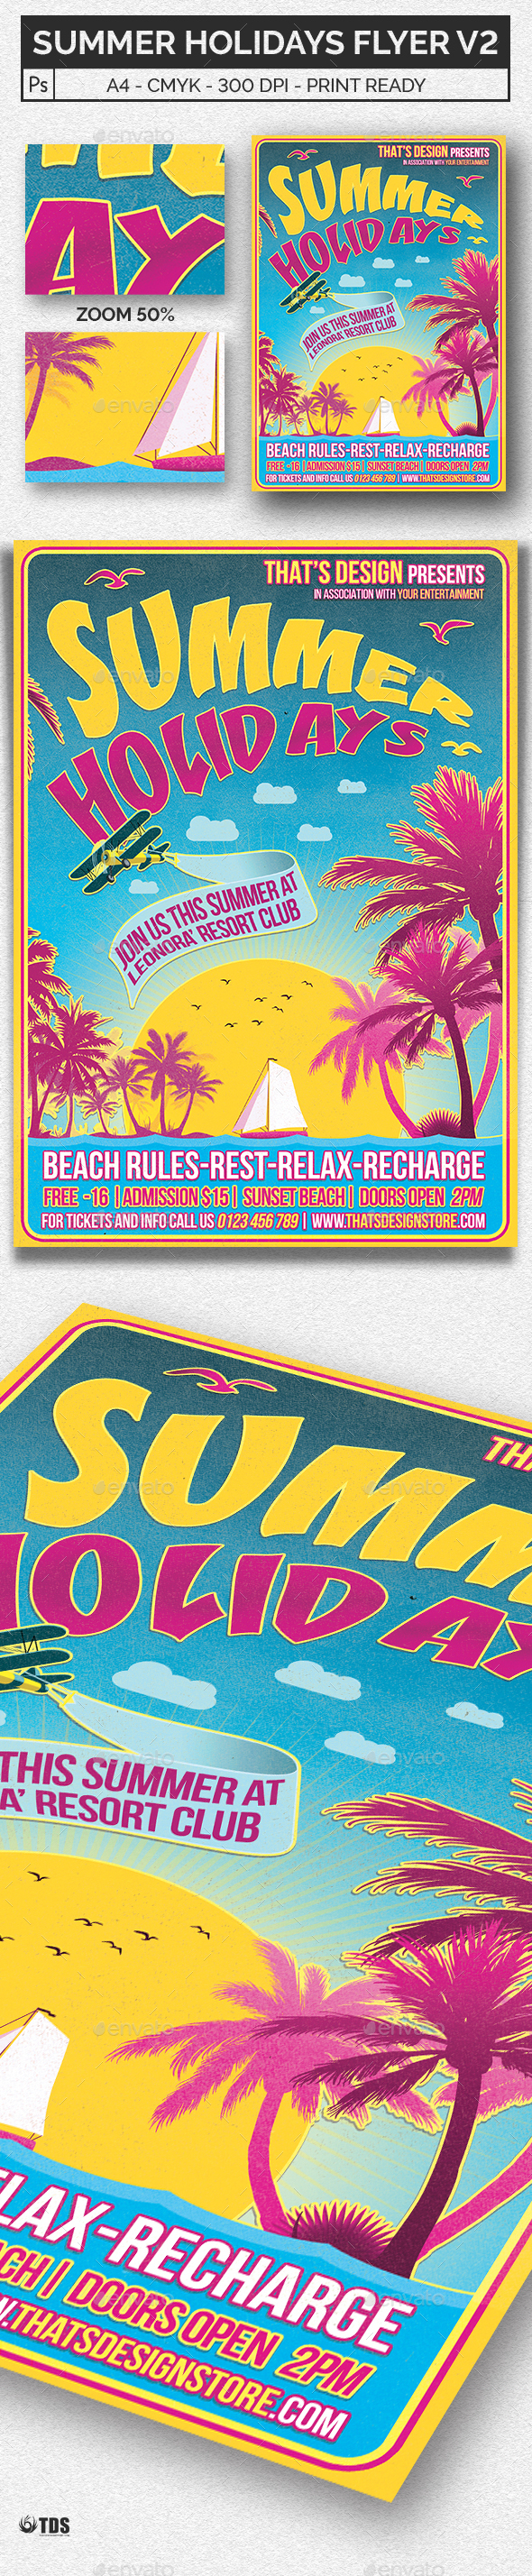 Summer Holidays Flyer Template V2 - Events Flyers